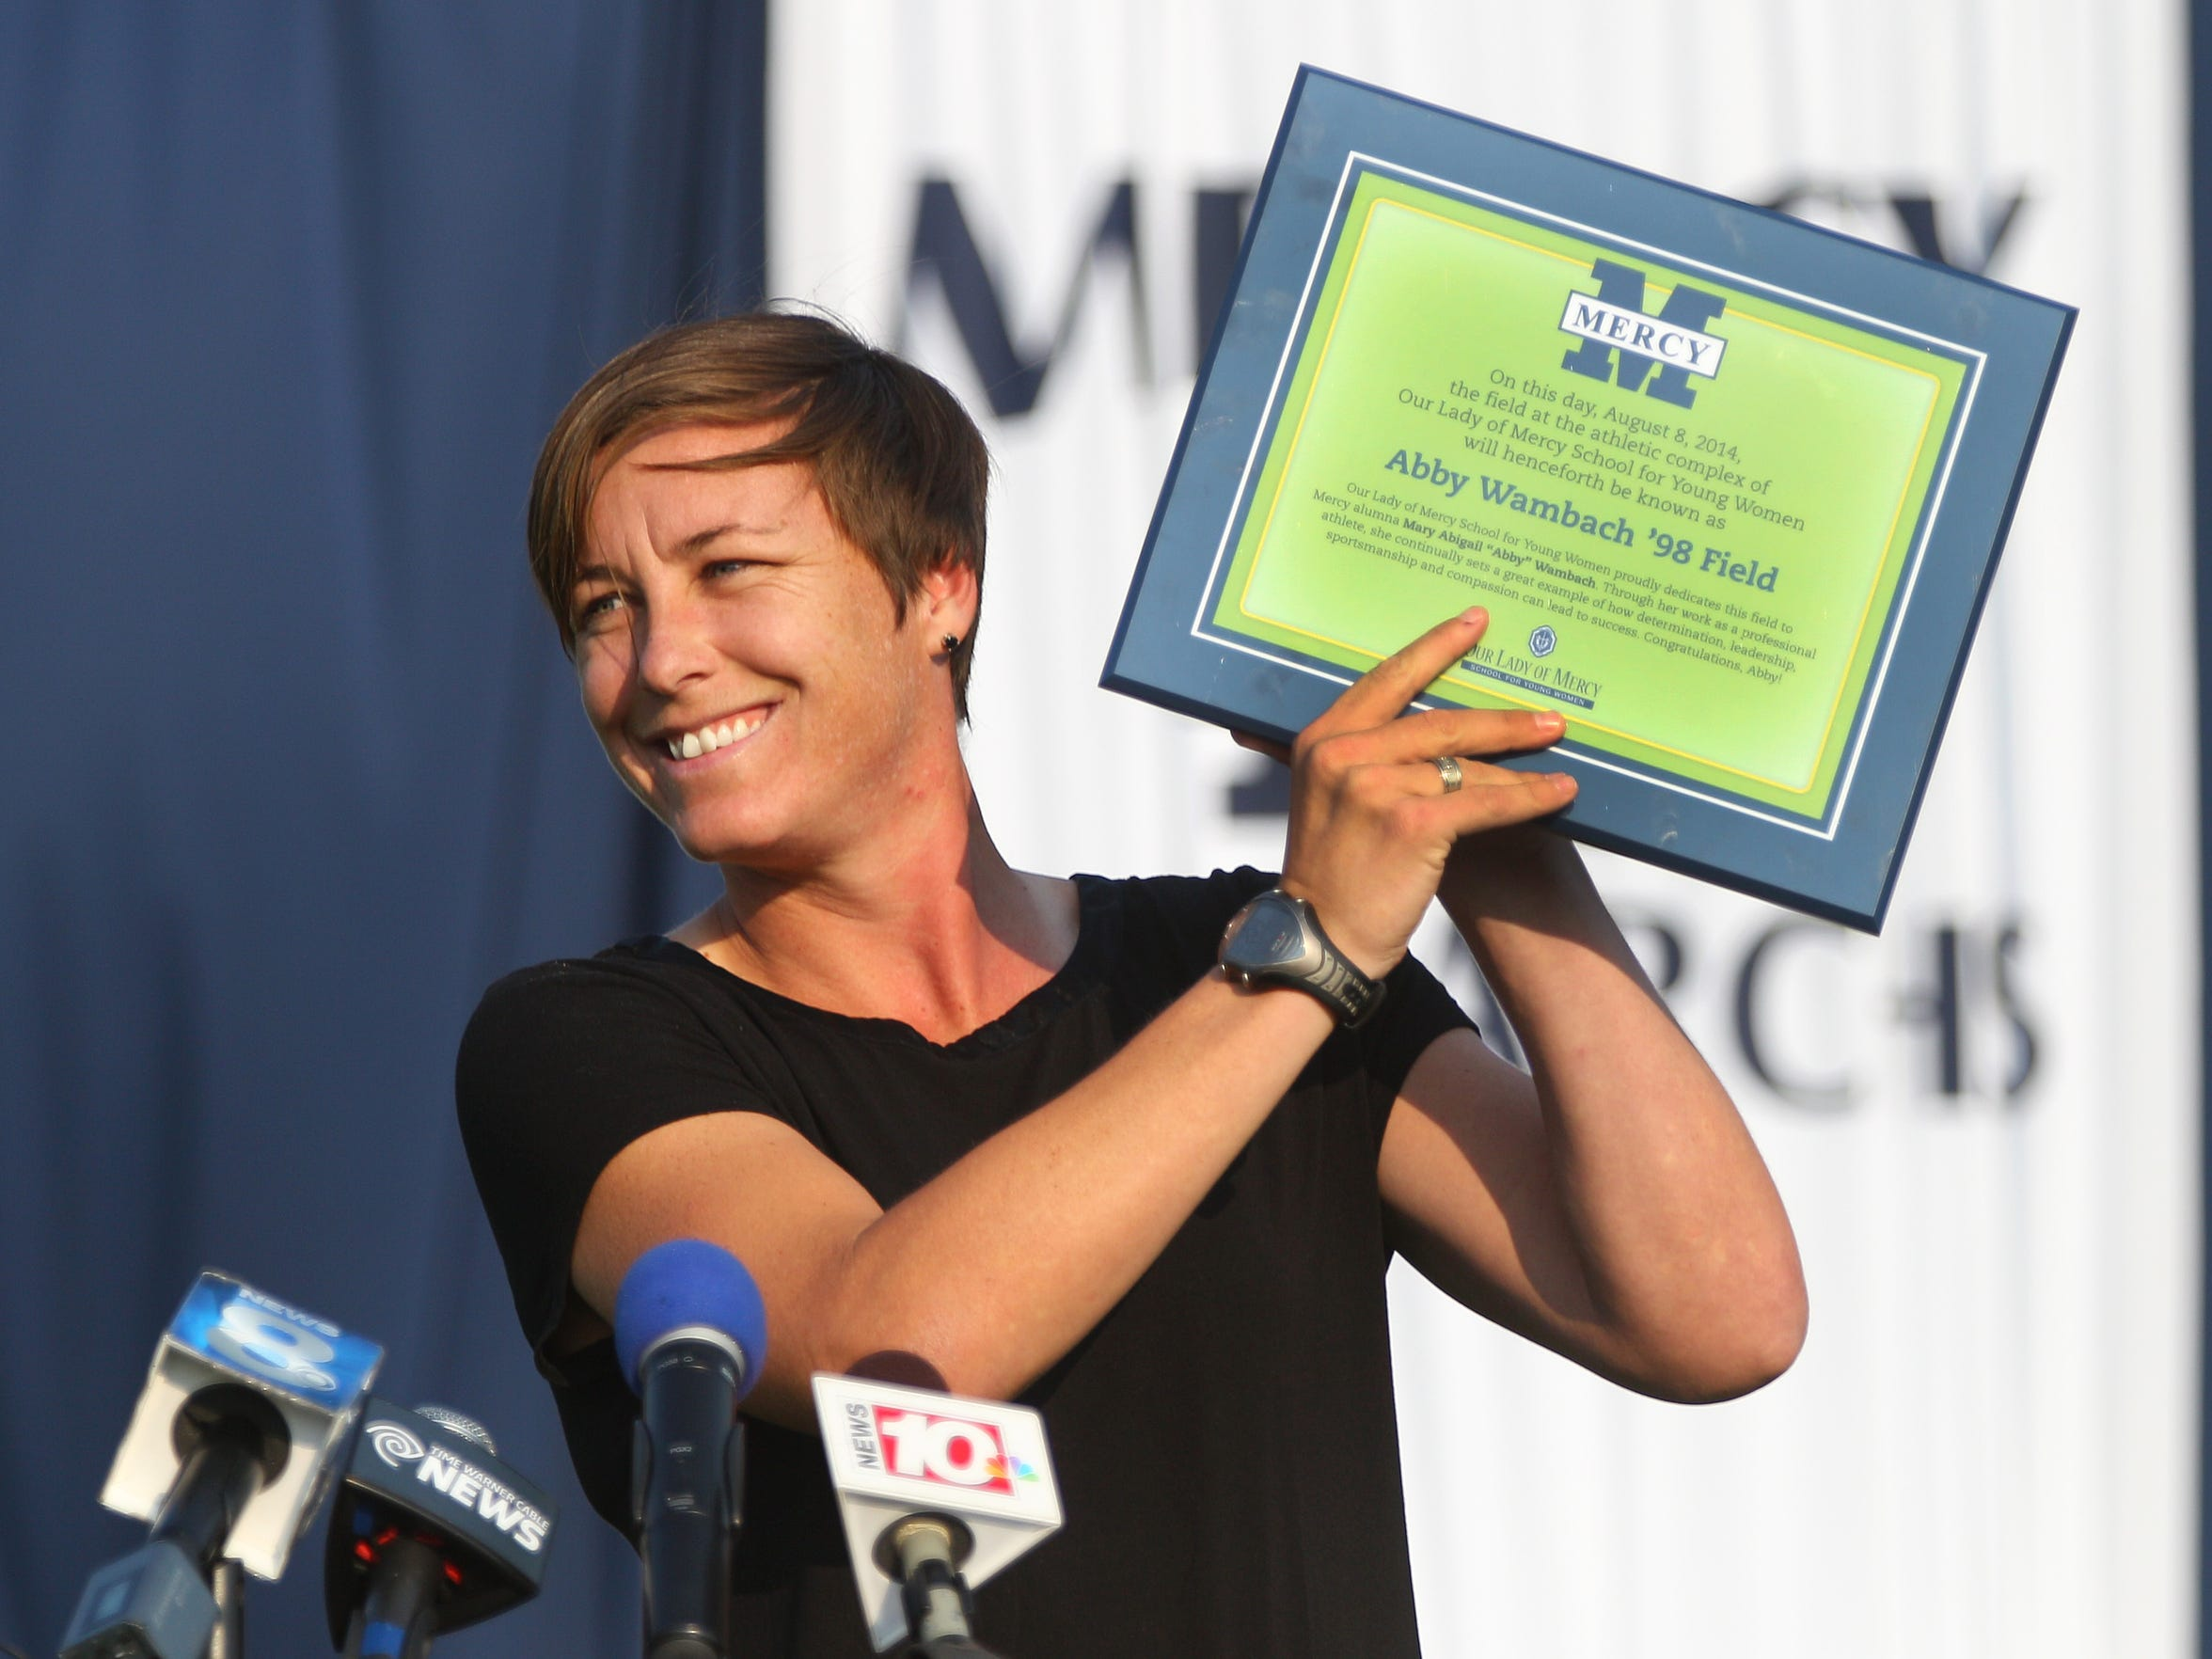 Abby Wambach displays a plaque she received after the soccer field at Our Lady of Mercy was named in her honor in 2014.